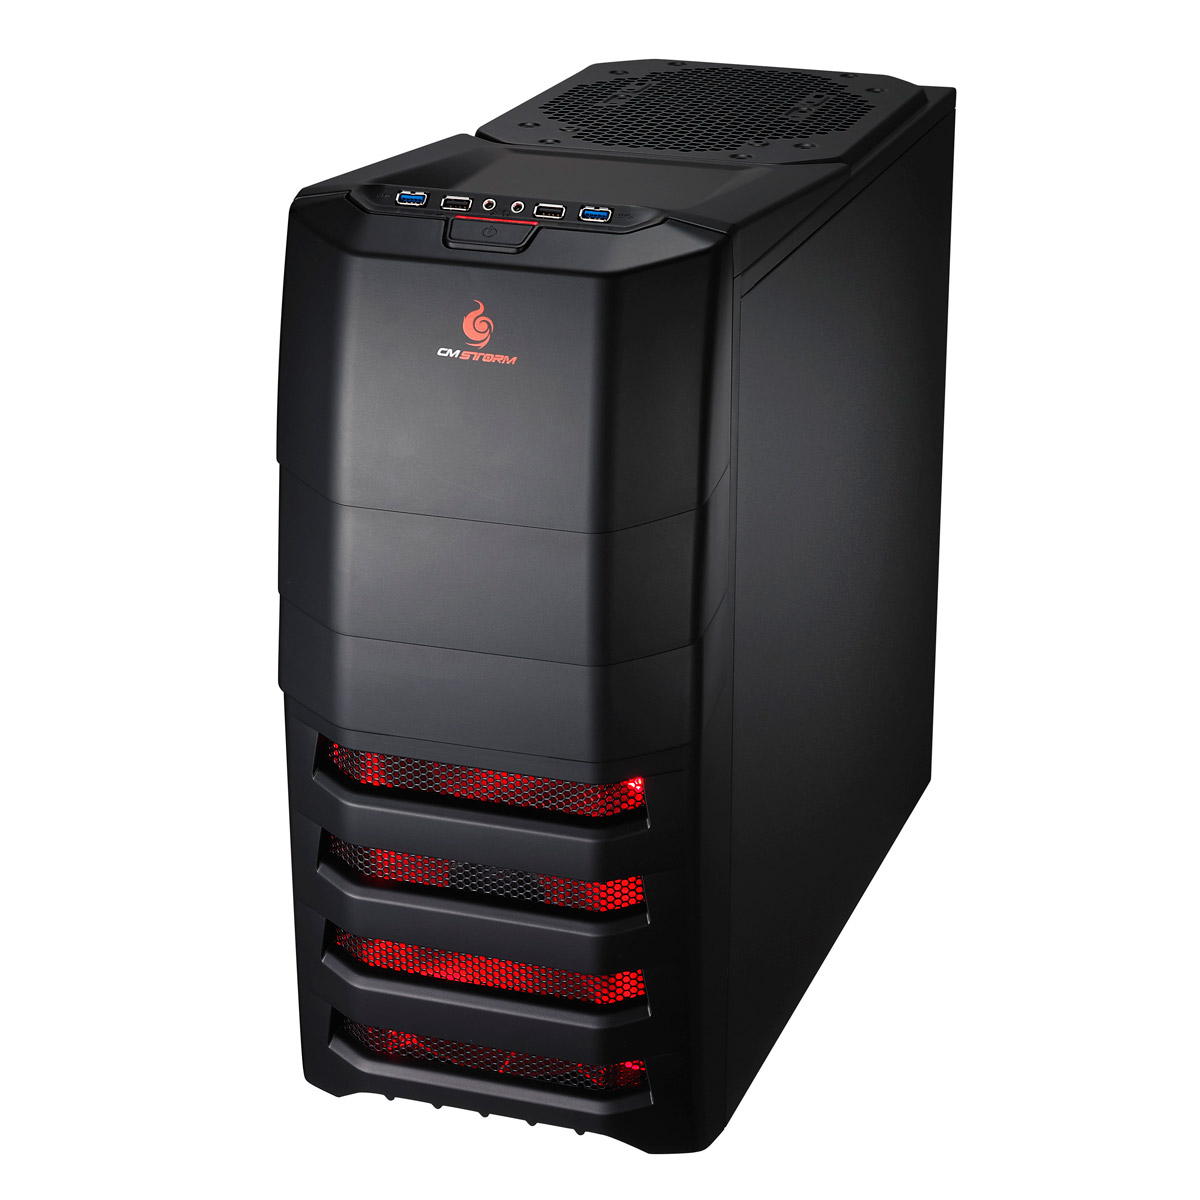 Boitier PC Cooler Master Storm Enforcer SGC-5000-KKN1 sans alim, informatique ile reunion, informatique reunion 974